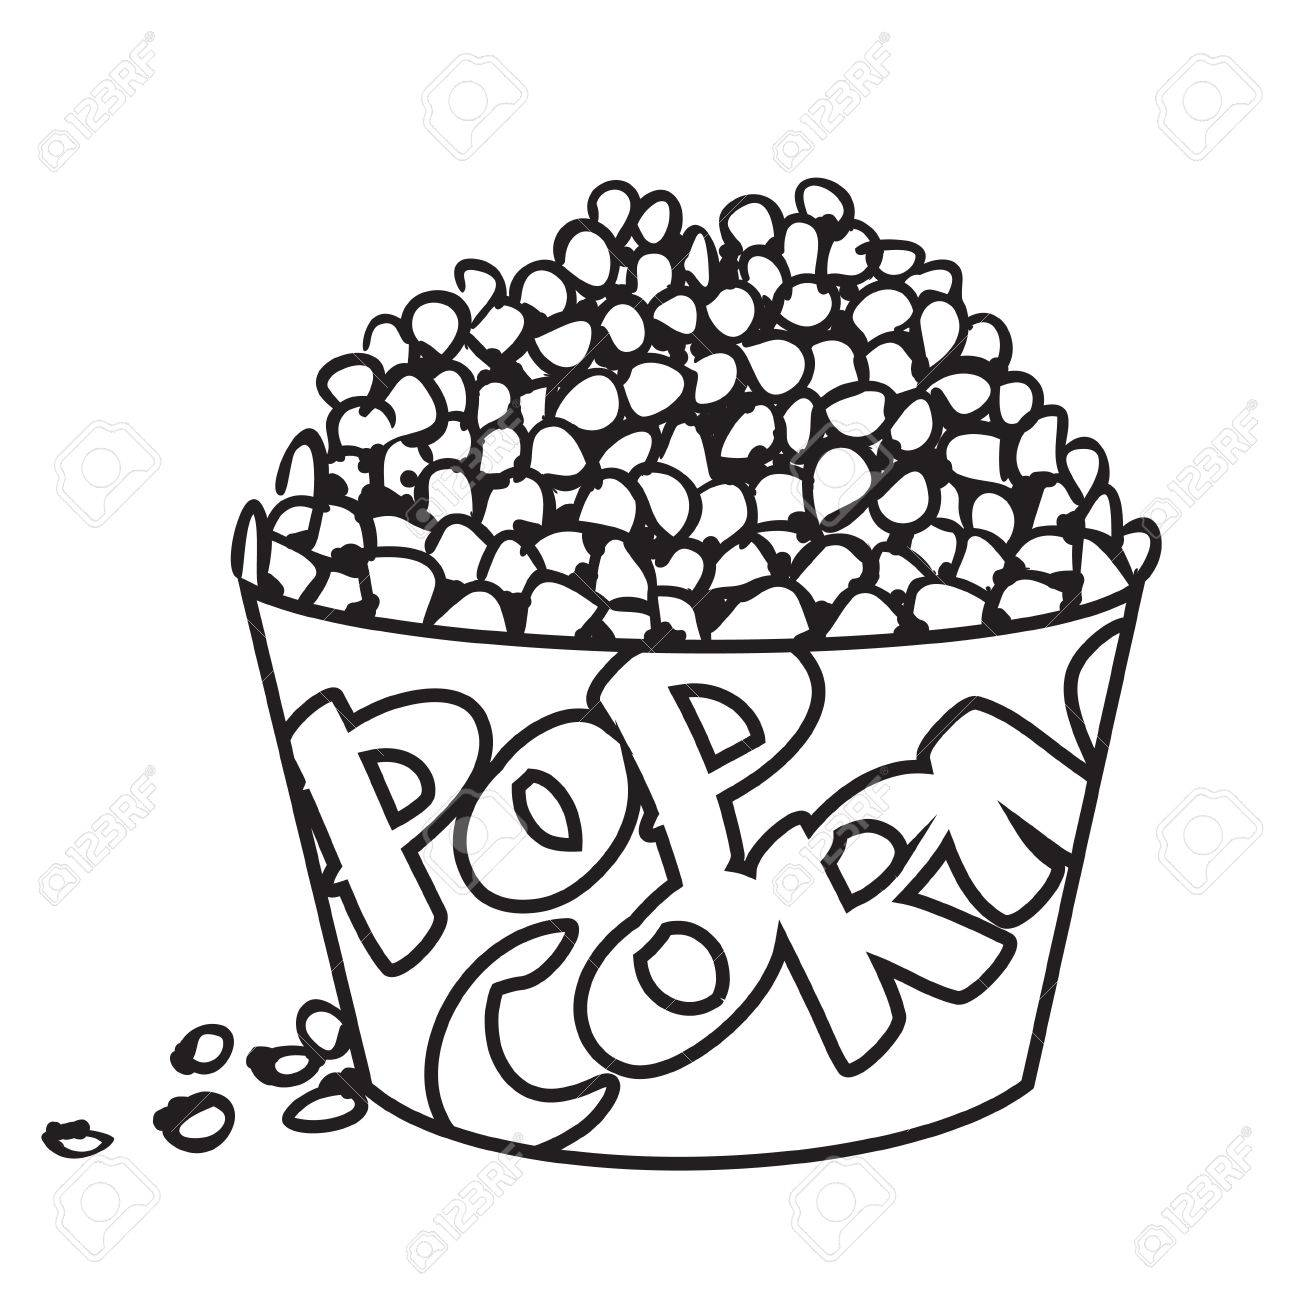 1300x1300 Vector Illustration Of Big Bowl Of Popcorn In Black And White